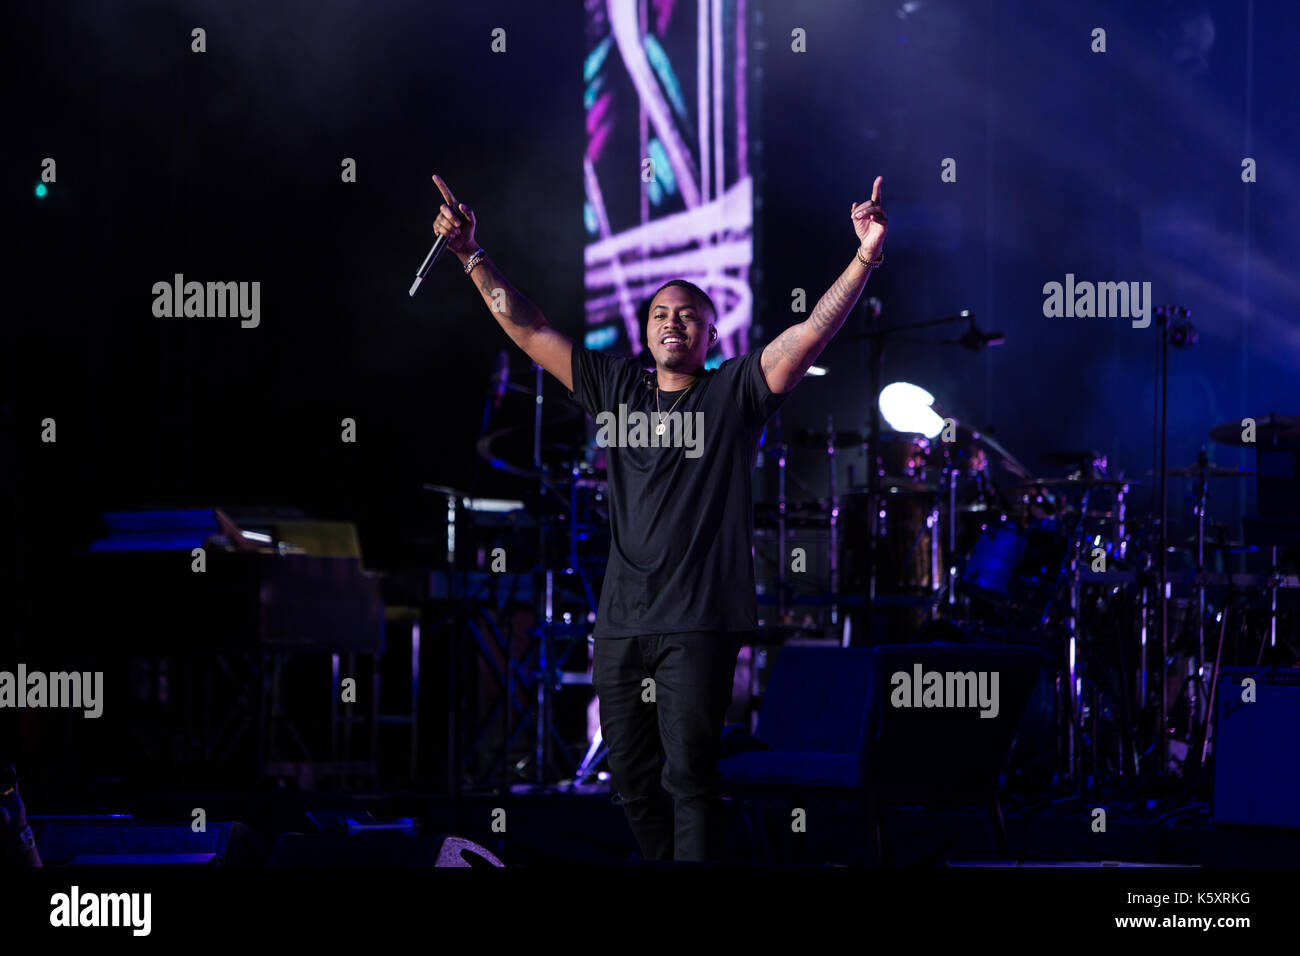 Toronto, Canada. 10th September 2017. NAS performs at the Budweiser Stage in Toronto, on his co-headling tour with Ms. Lauryn Hill. Credit: Bobby Singh/Alamy Live News - Stock Image